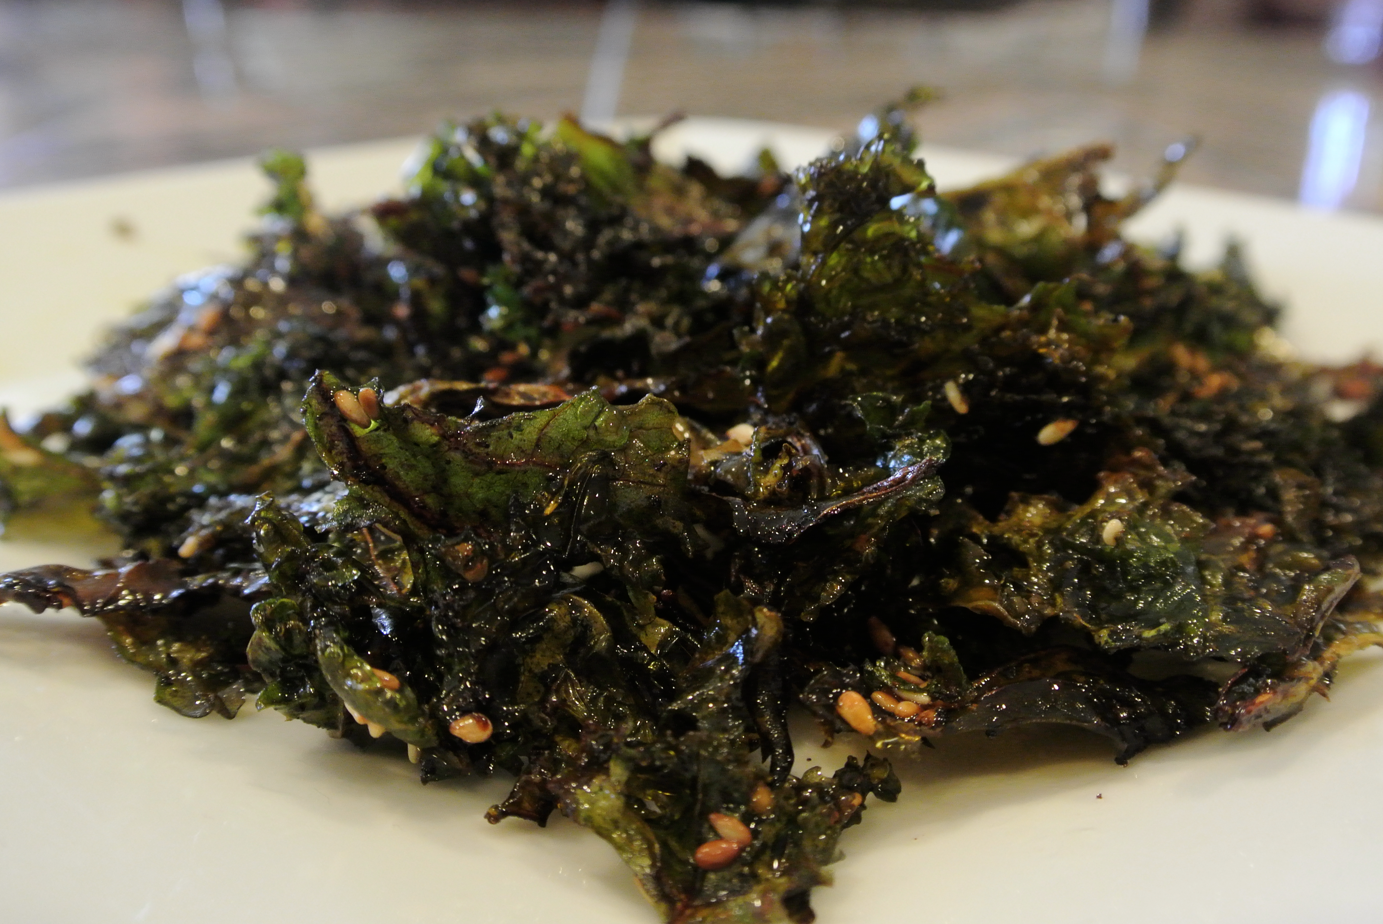 ... chips roasted kale chips with sea salt and vinegar turkey sloppy joes